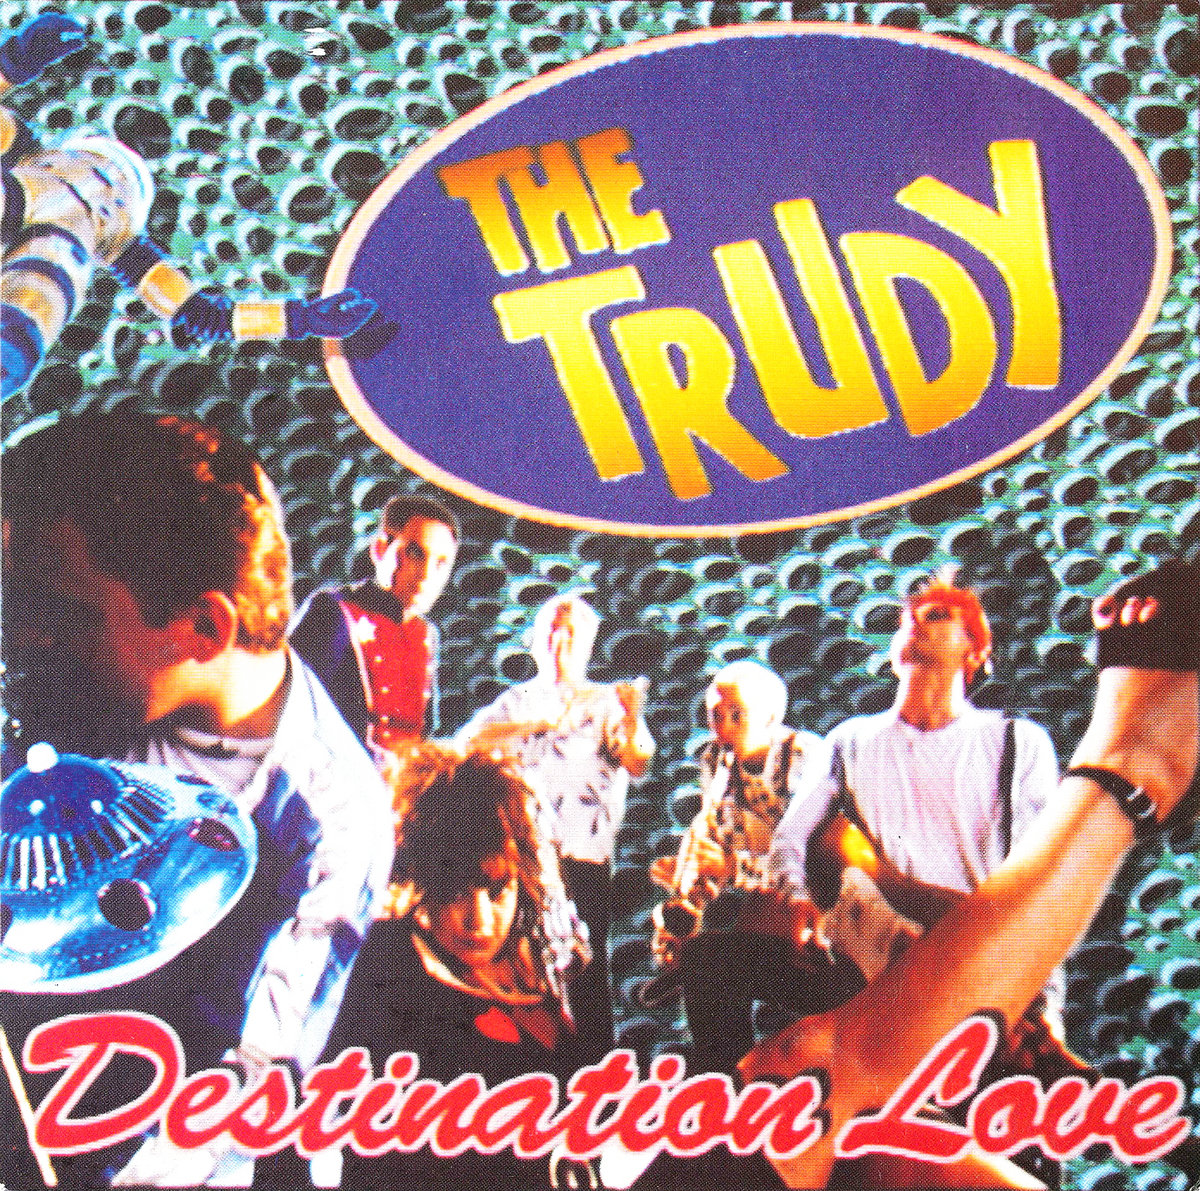 Destination Love by The Trudy